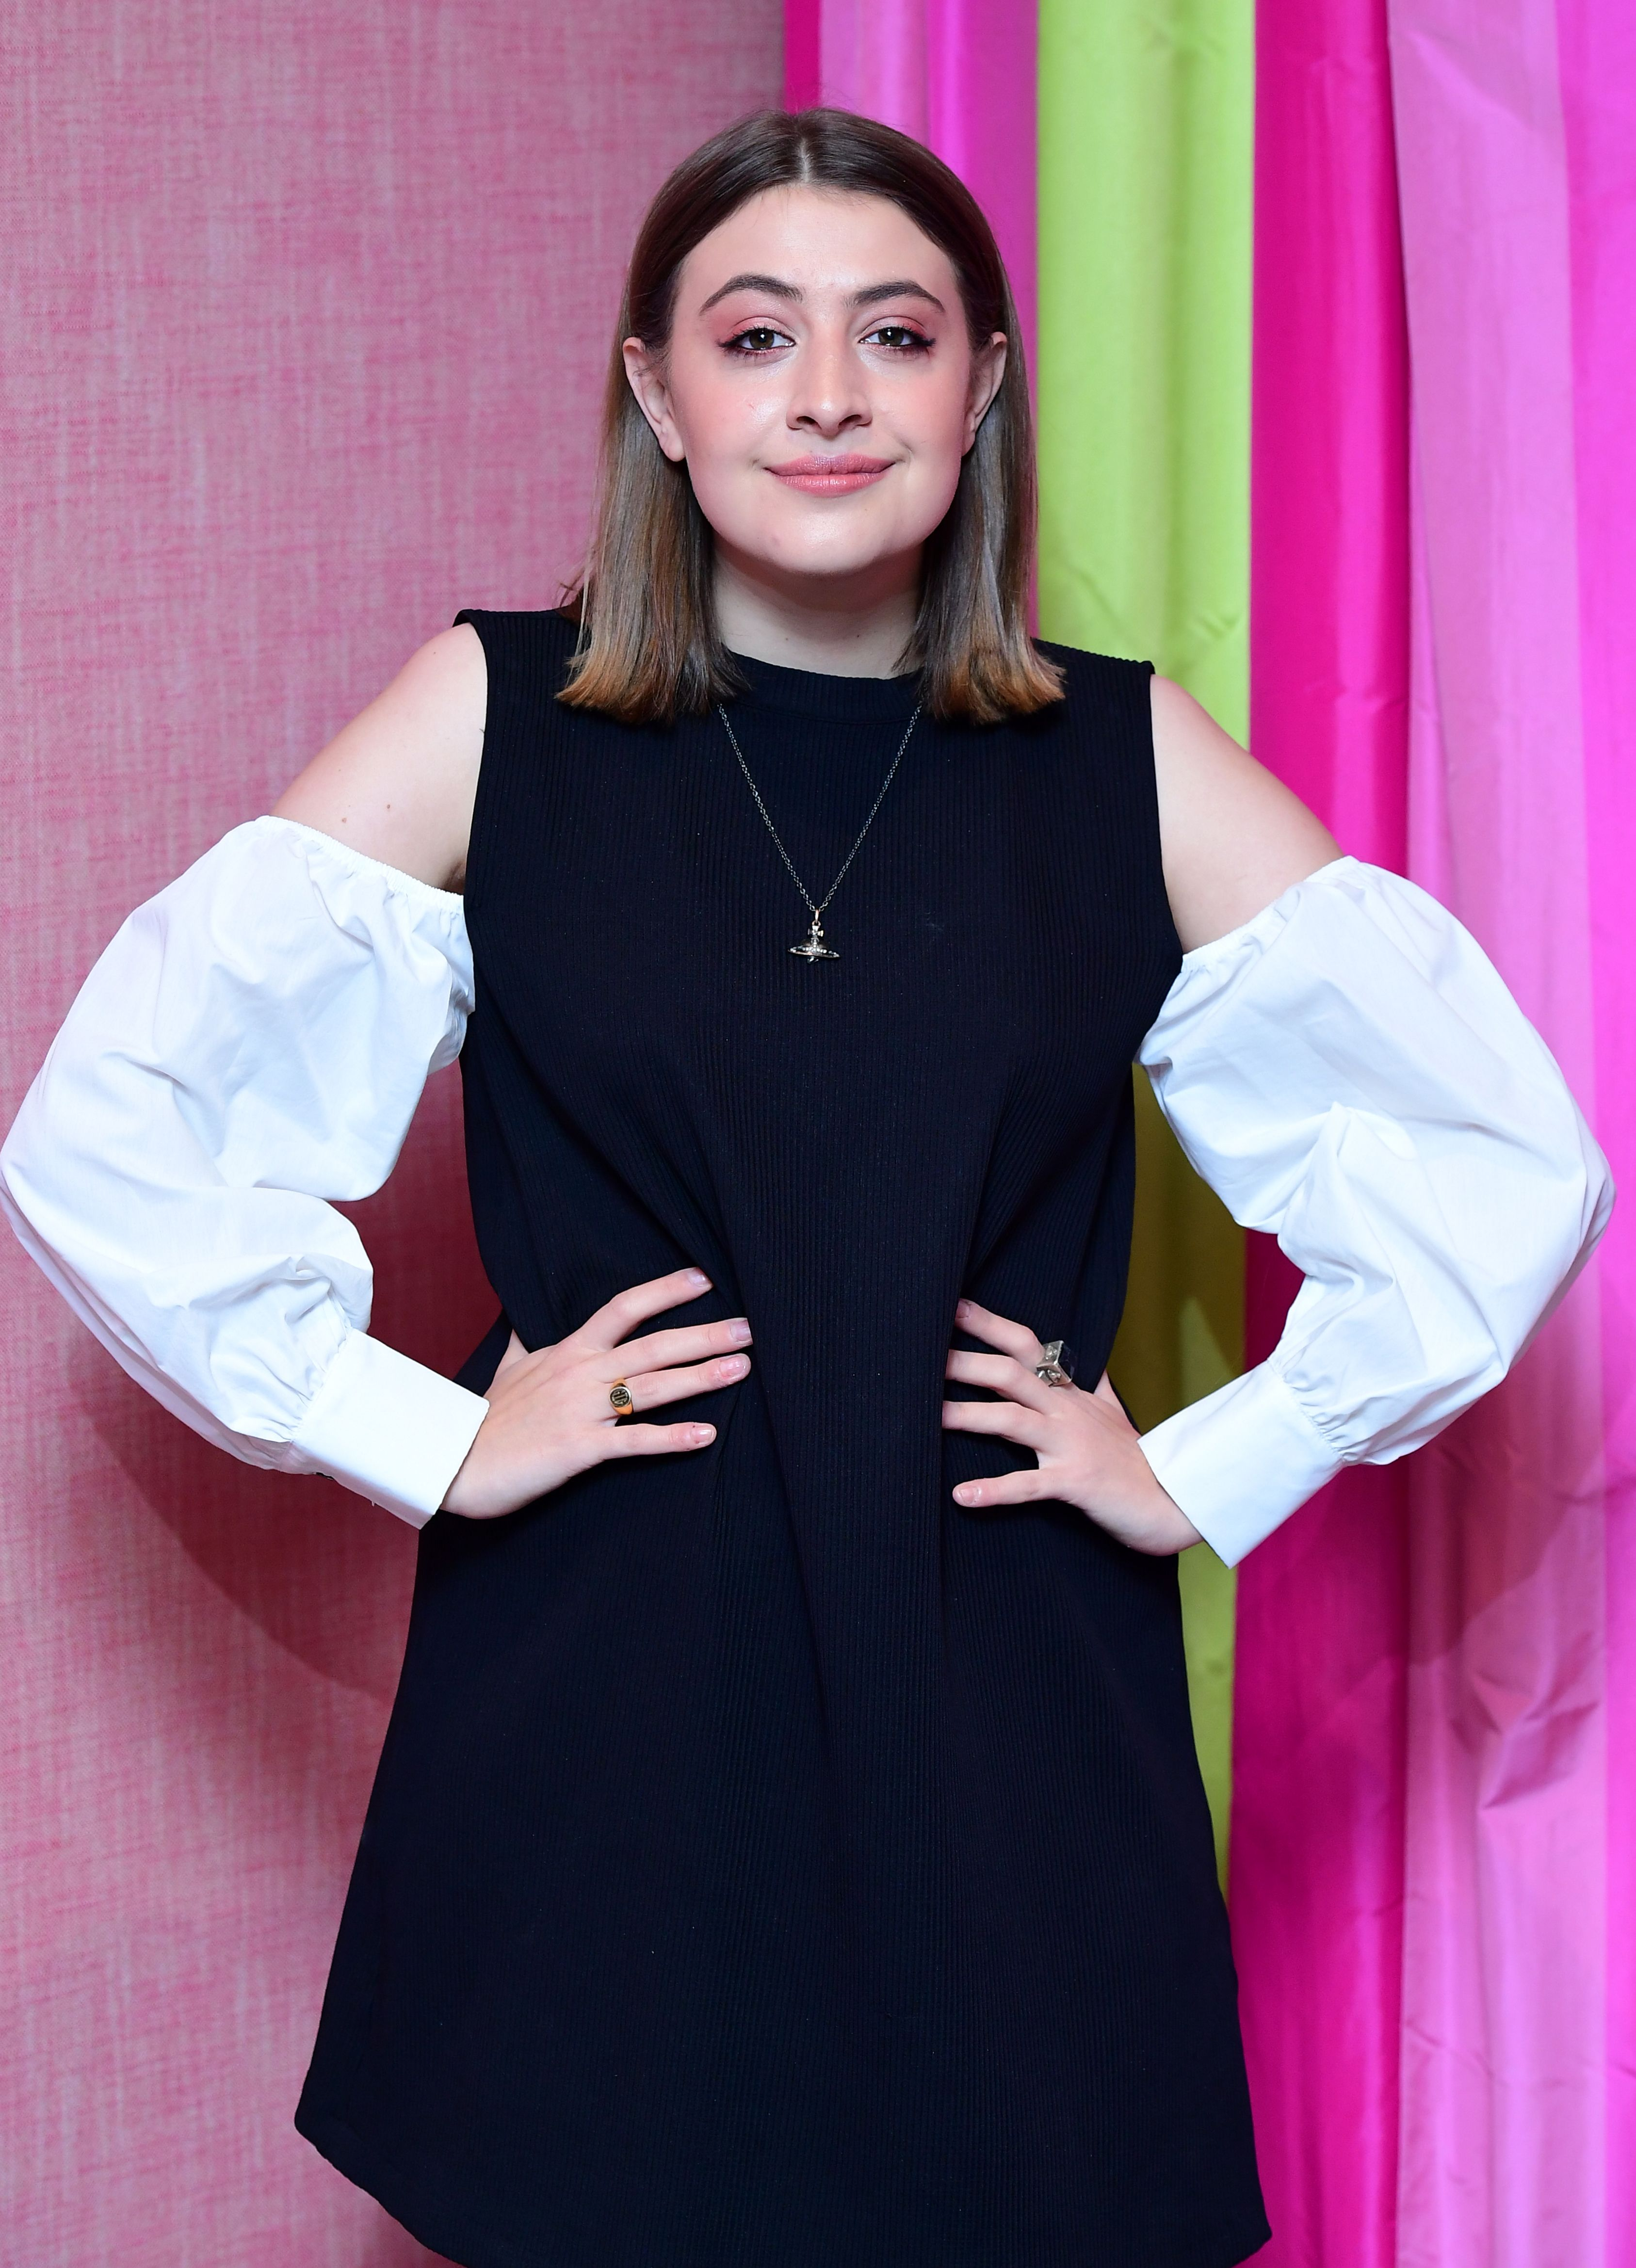 Georgia Groome attending the premiere of Double Date, held at the Soho Hotel, London. Picture Date: Tuesday 10 October. Photo credit should read: Ian West/PA Wire (Photo by Ian West/PA Images via Getty Images)